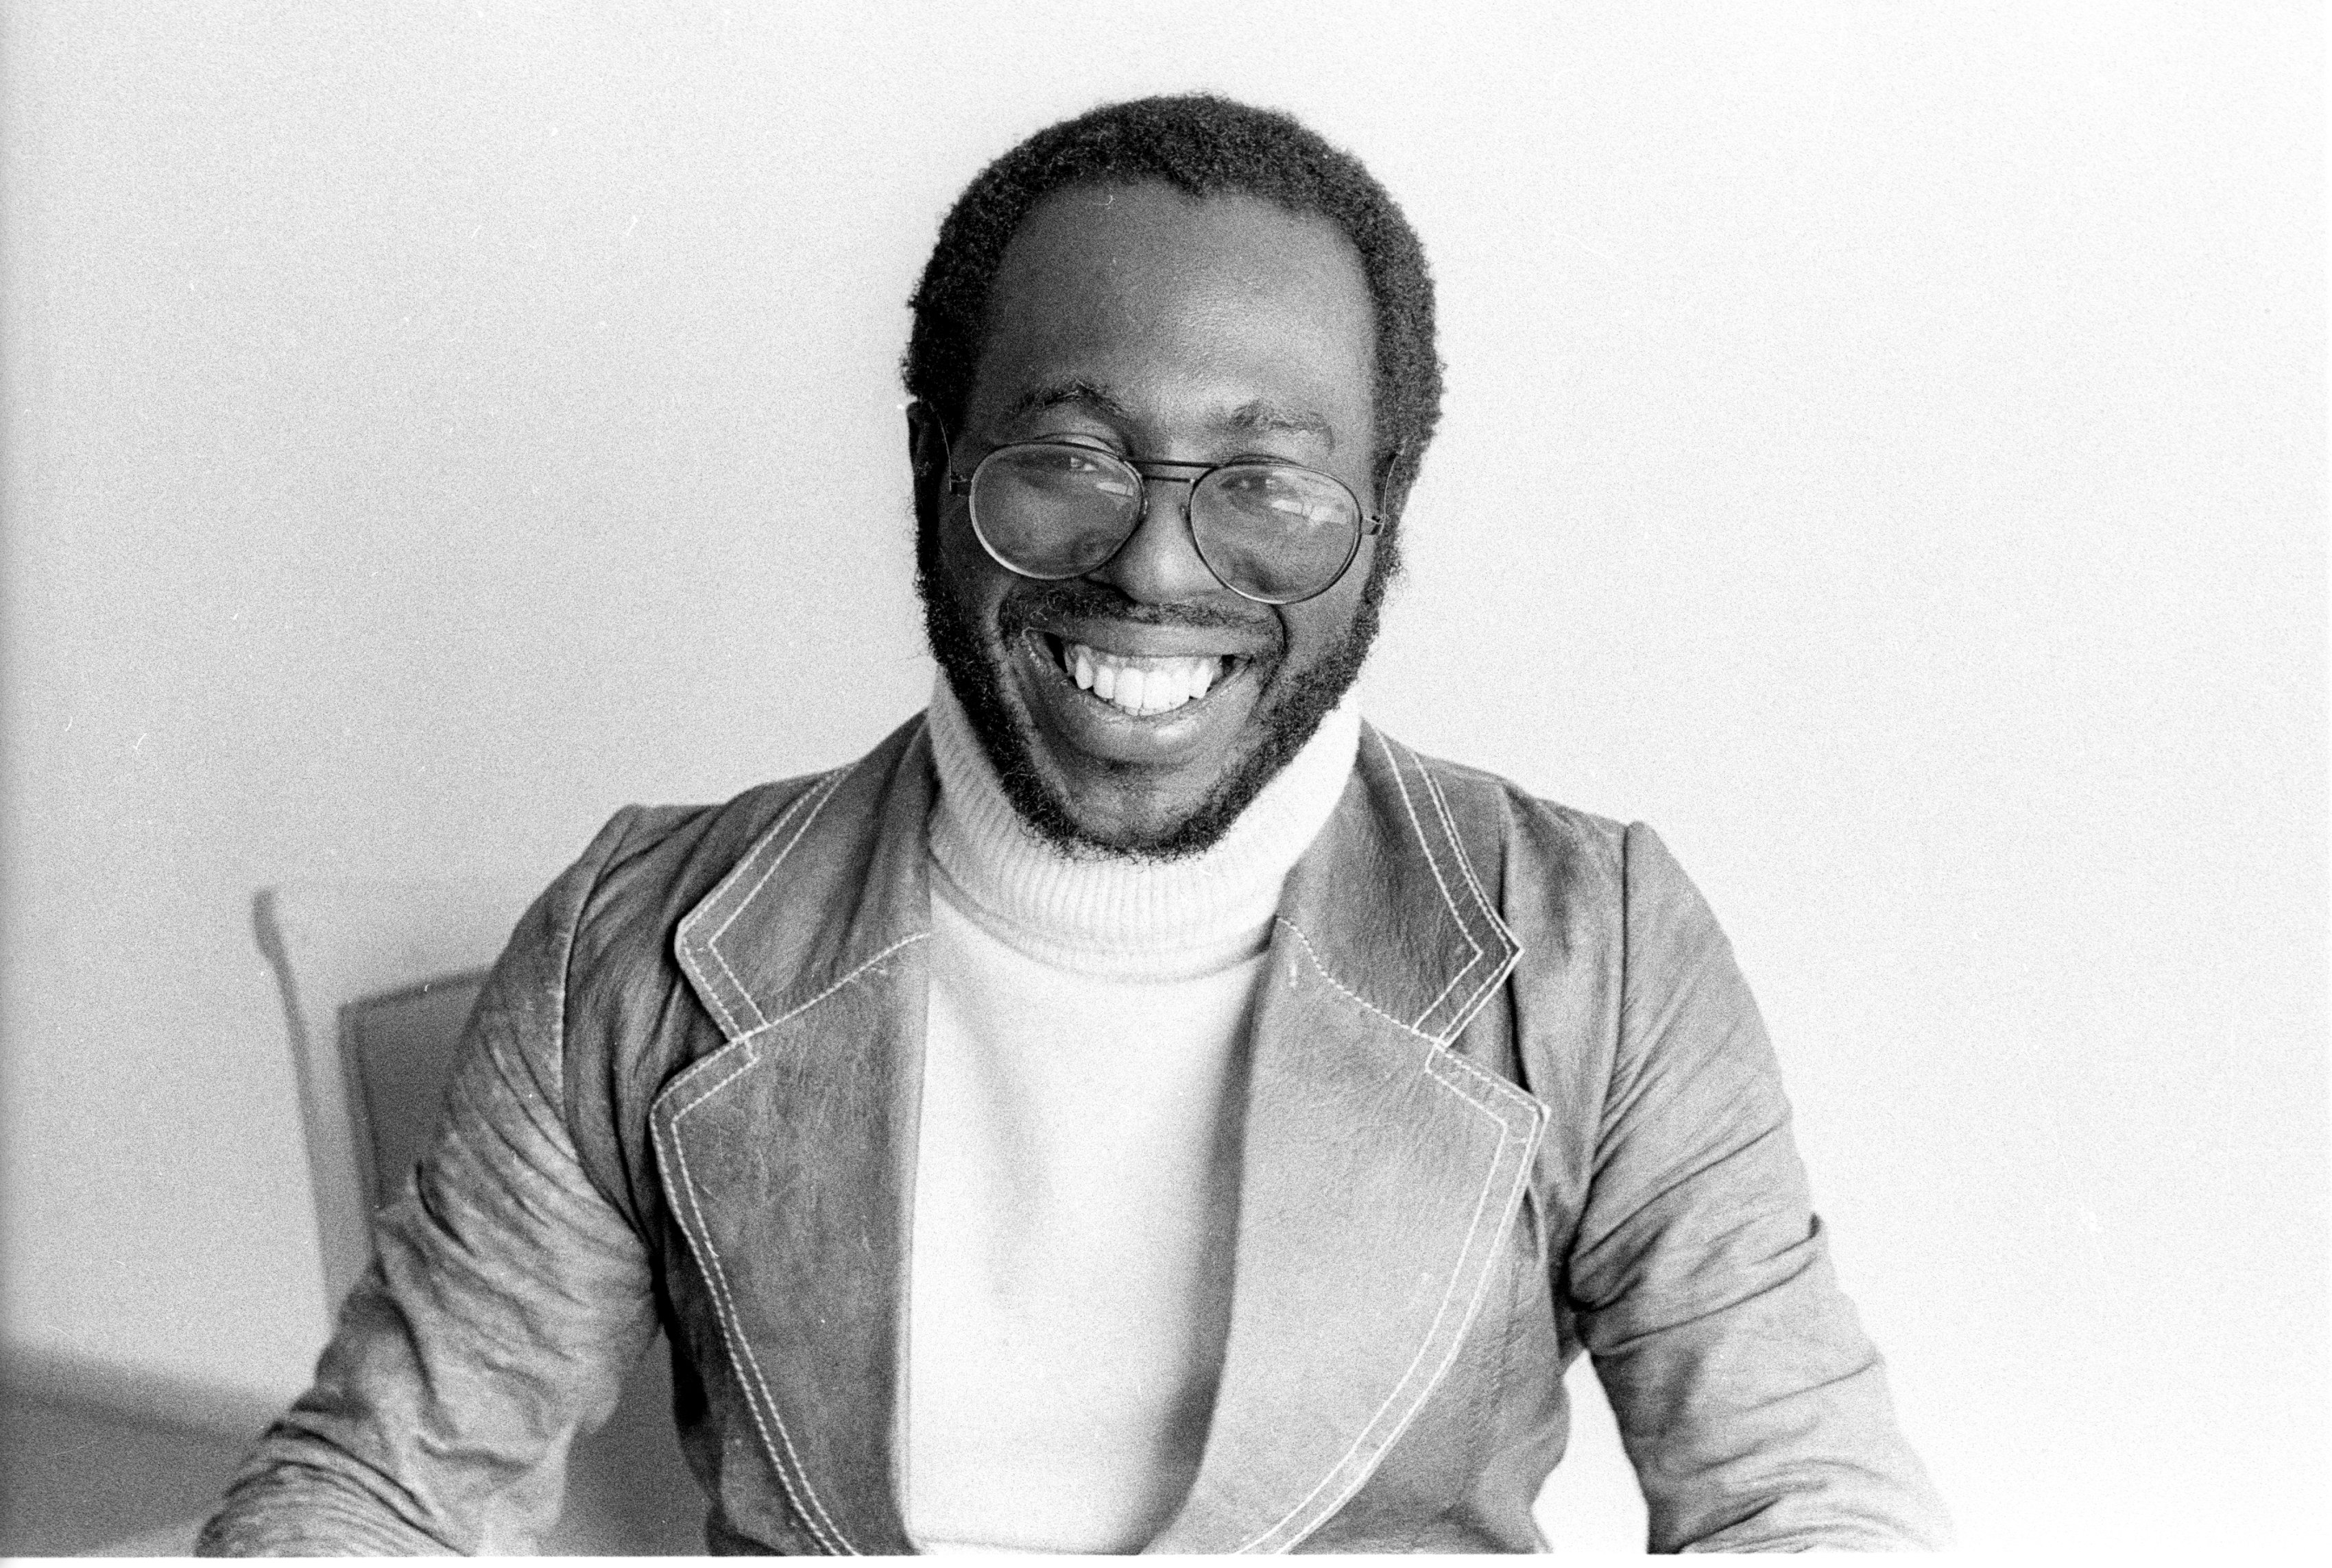 Black and white promotional photo of R&B singer Curtis Mayfield, unknown date | Photo: Getty Images